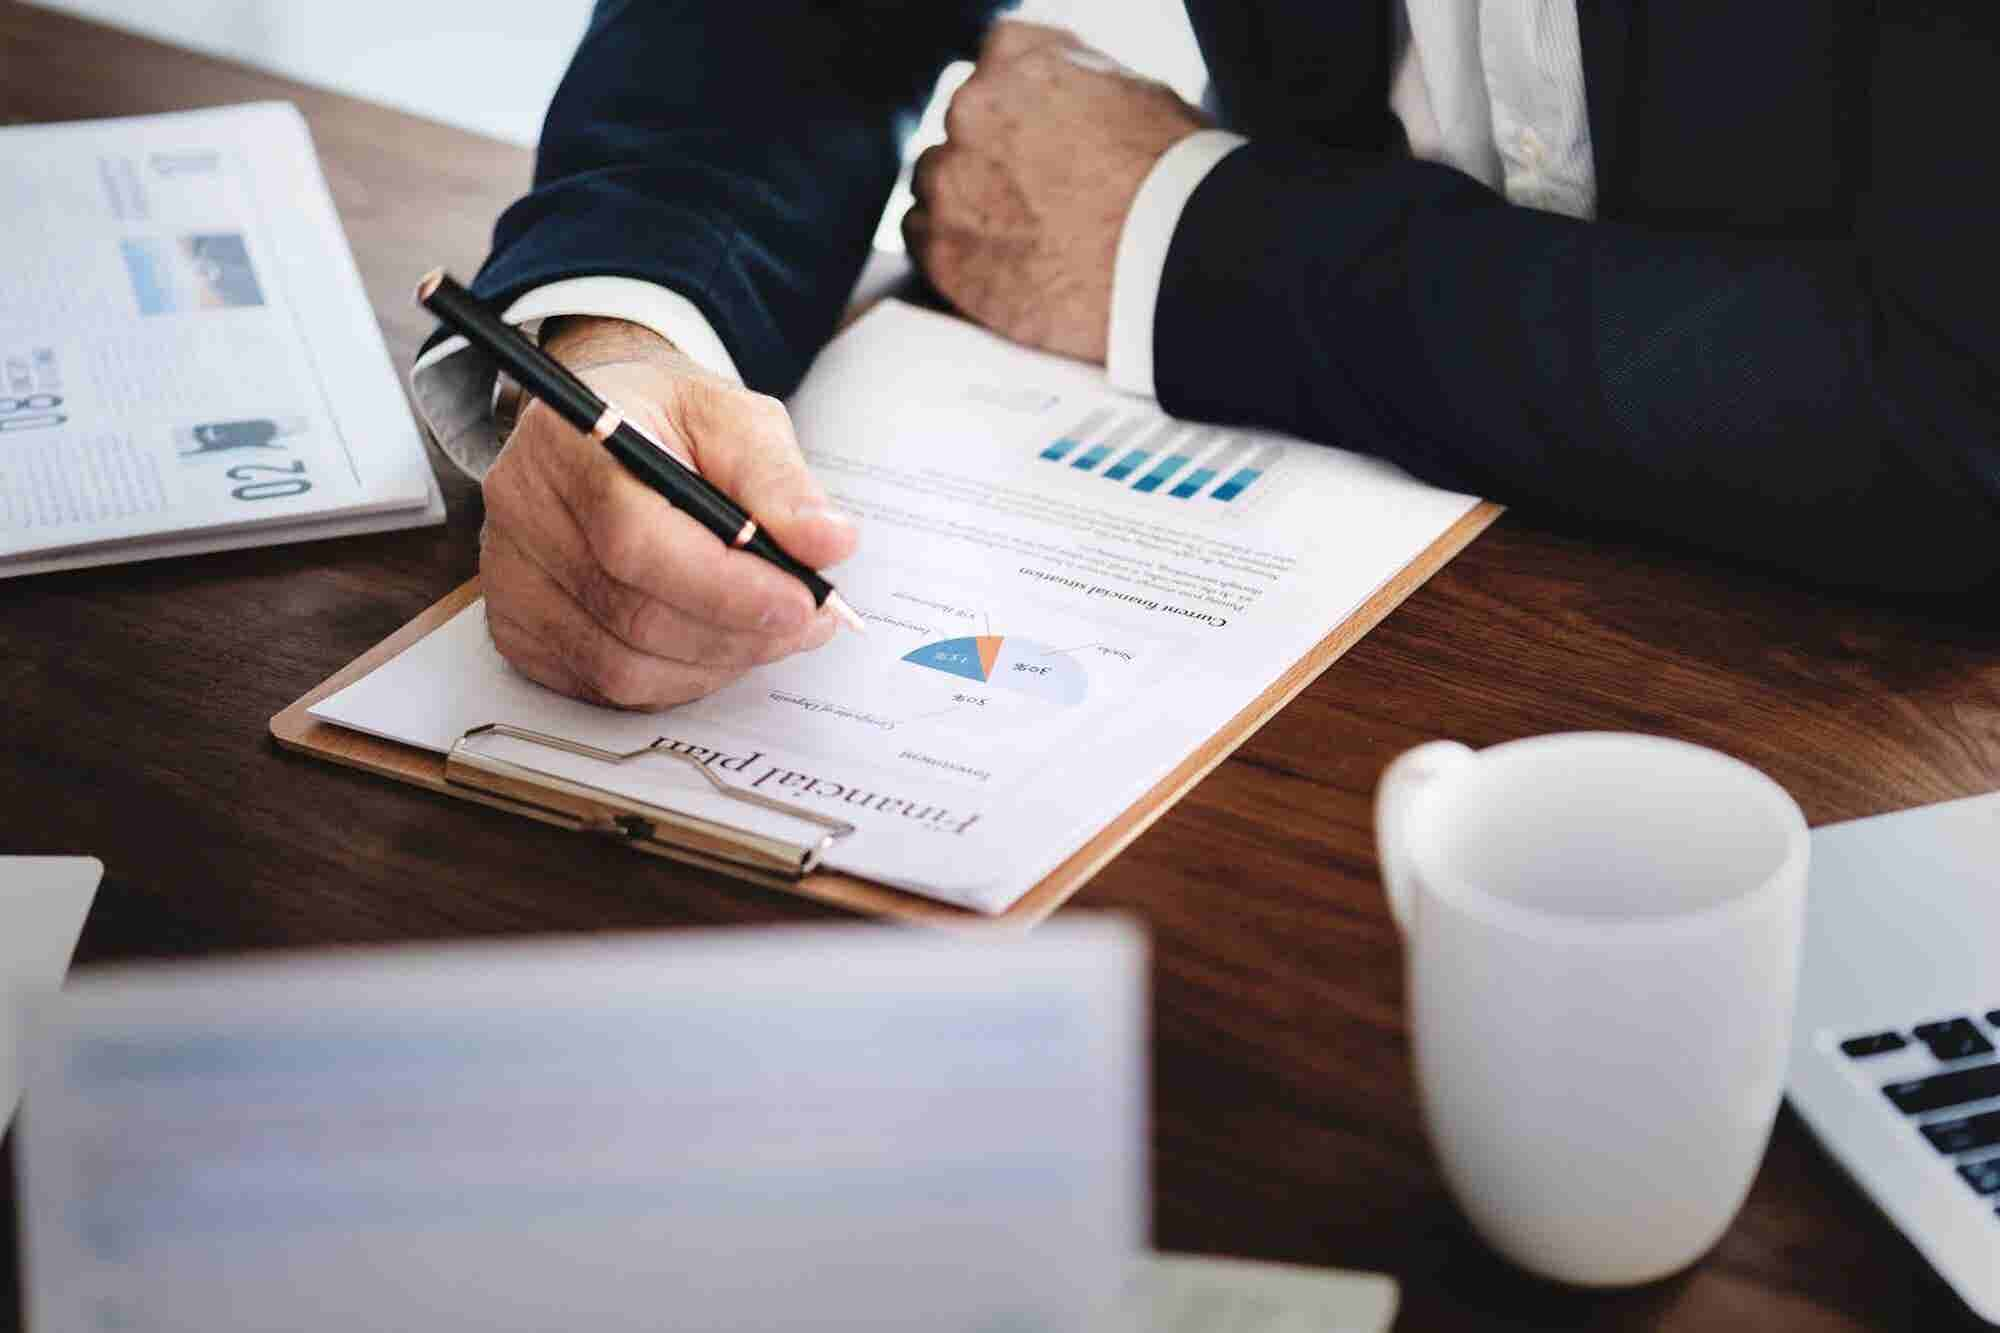 Master Business Finance With This Expert-Led Class